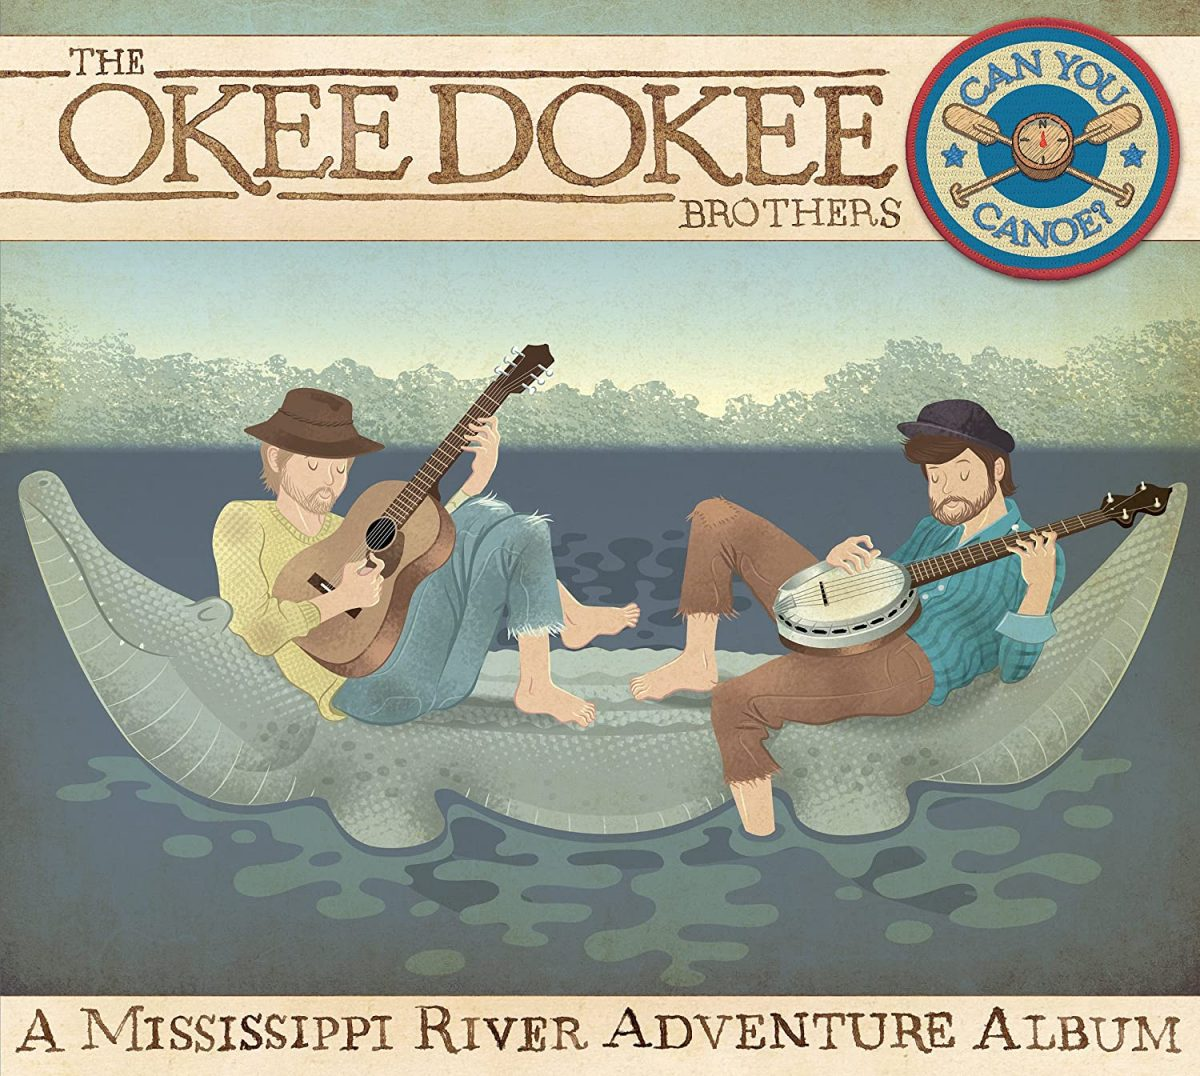 The Okee Dokee Brothers - Can You Canoe? Album Art